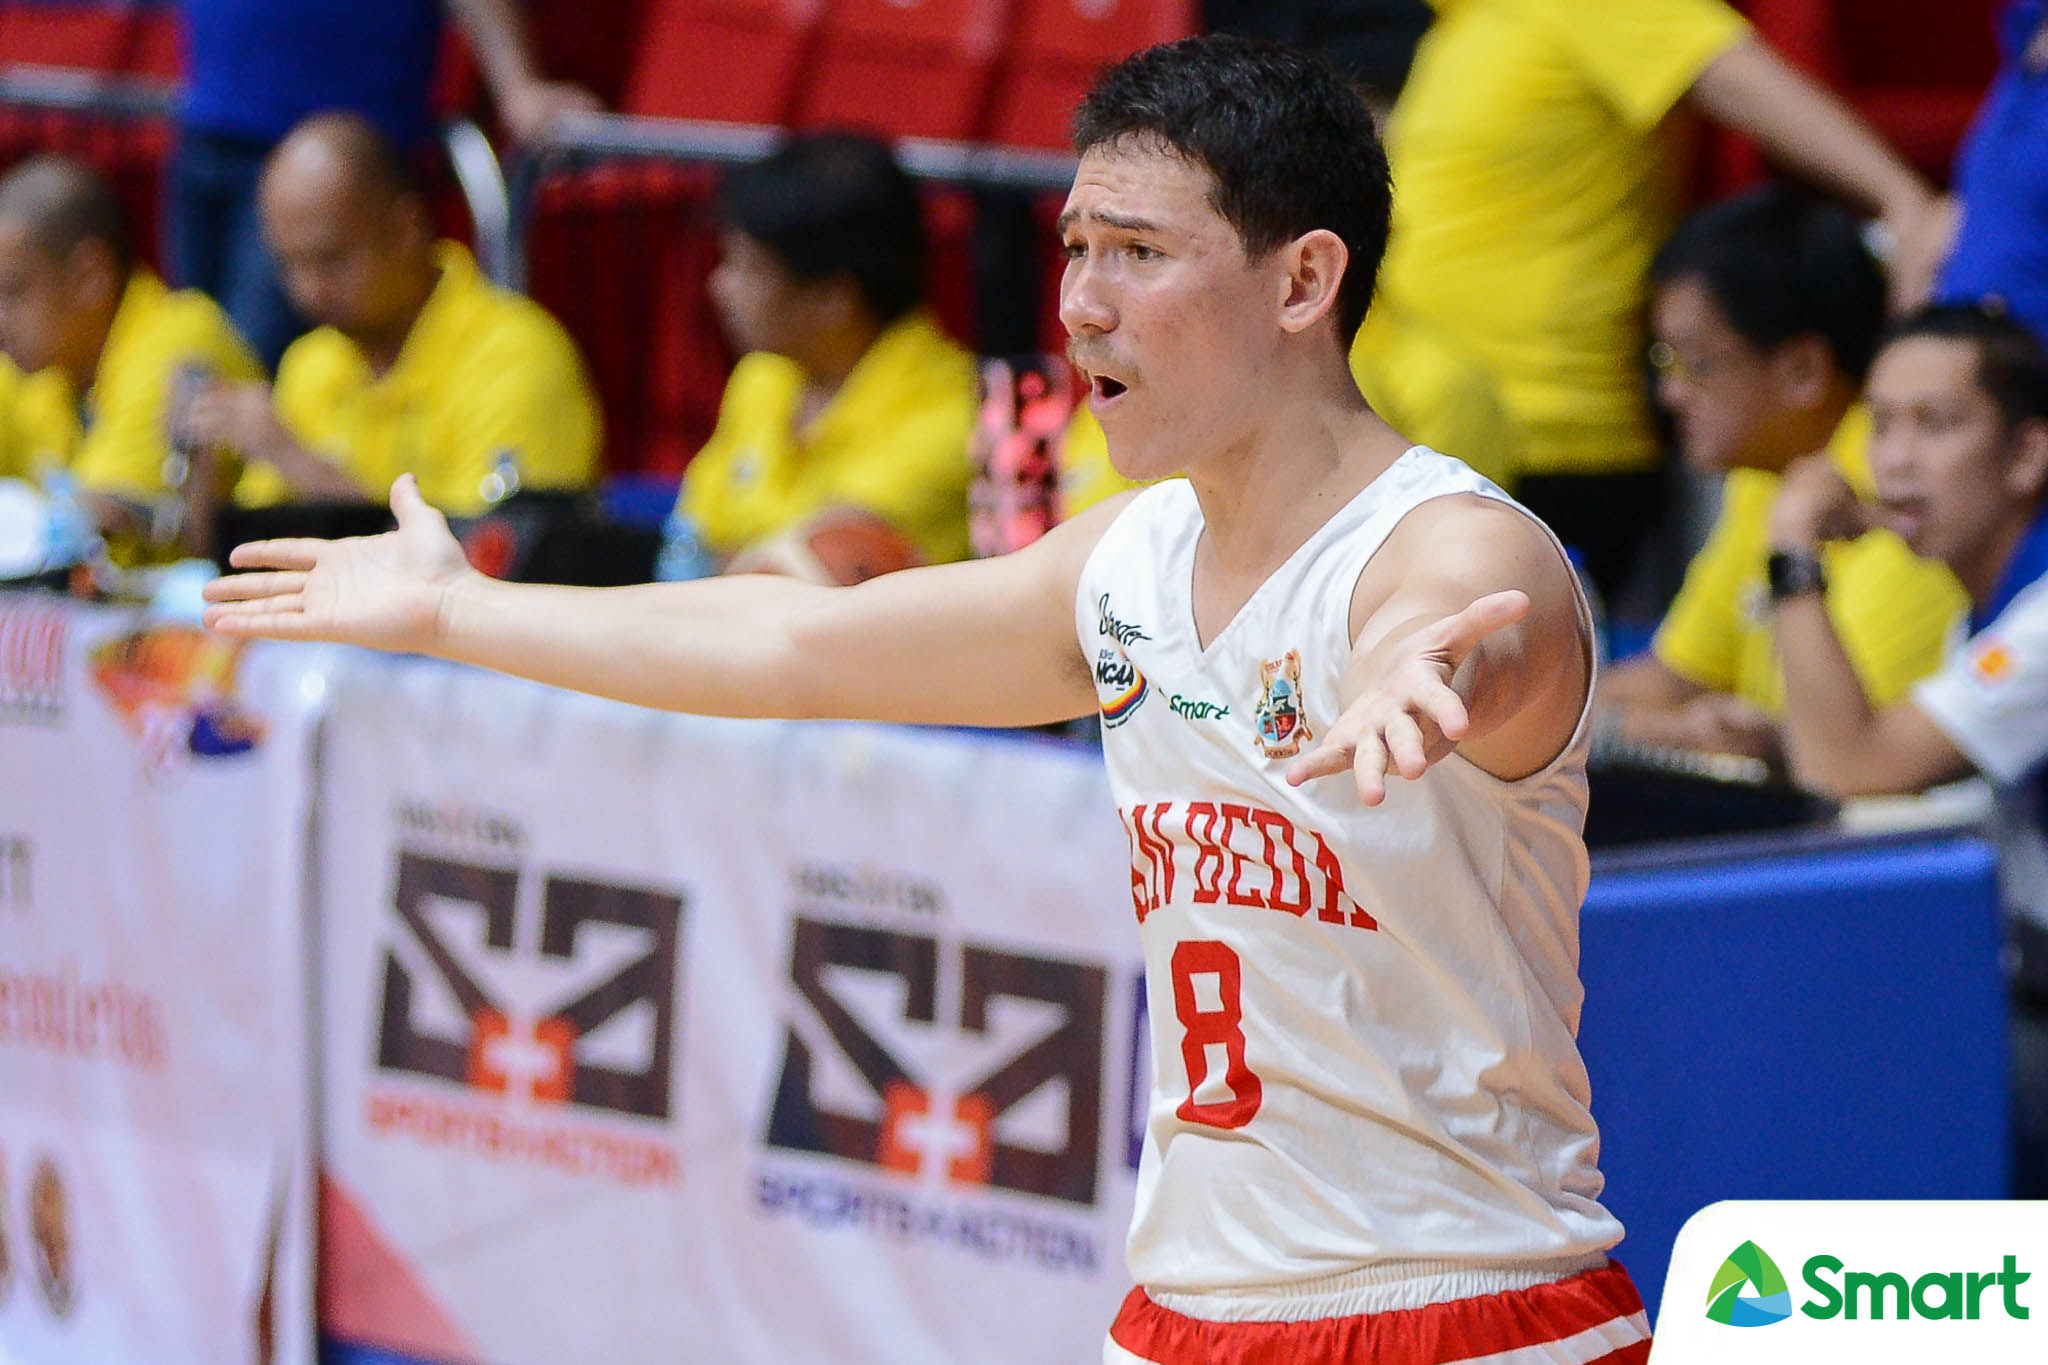 Tiebreaker Times NCAA suspends 3 players, Boyet Fernandez after San Beda-Saint Benilde scuffle Basketball CSB NCAA News SBC  San Beda Seniors Basketball Robert Bolick NCAA Season 93 Seniors Basketball NCAA Season 93 Clint Doliguez Carlo Young Boyet Fernandez Benilde Seniors Basketball